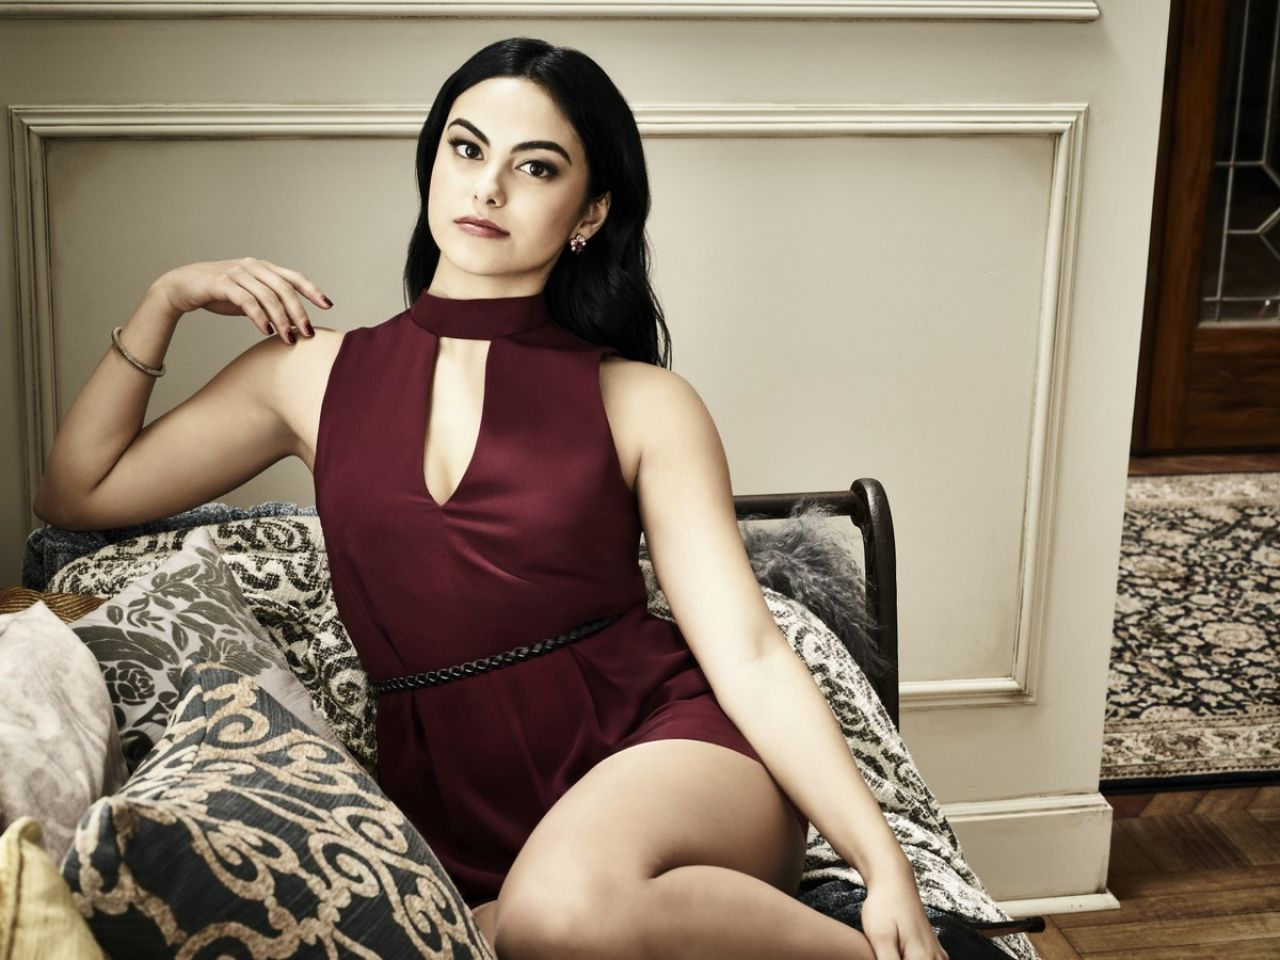 camila mendes photo 13 of 34 pics wallpaper   photo 922472